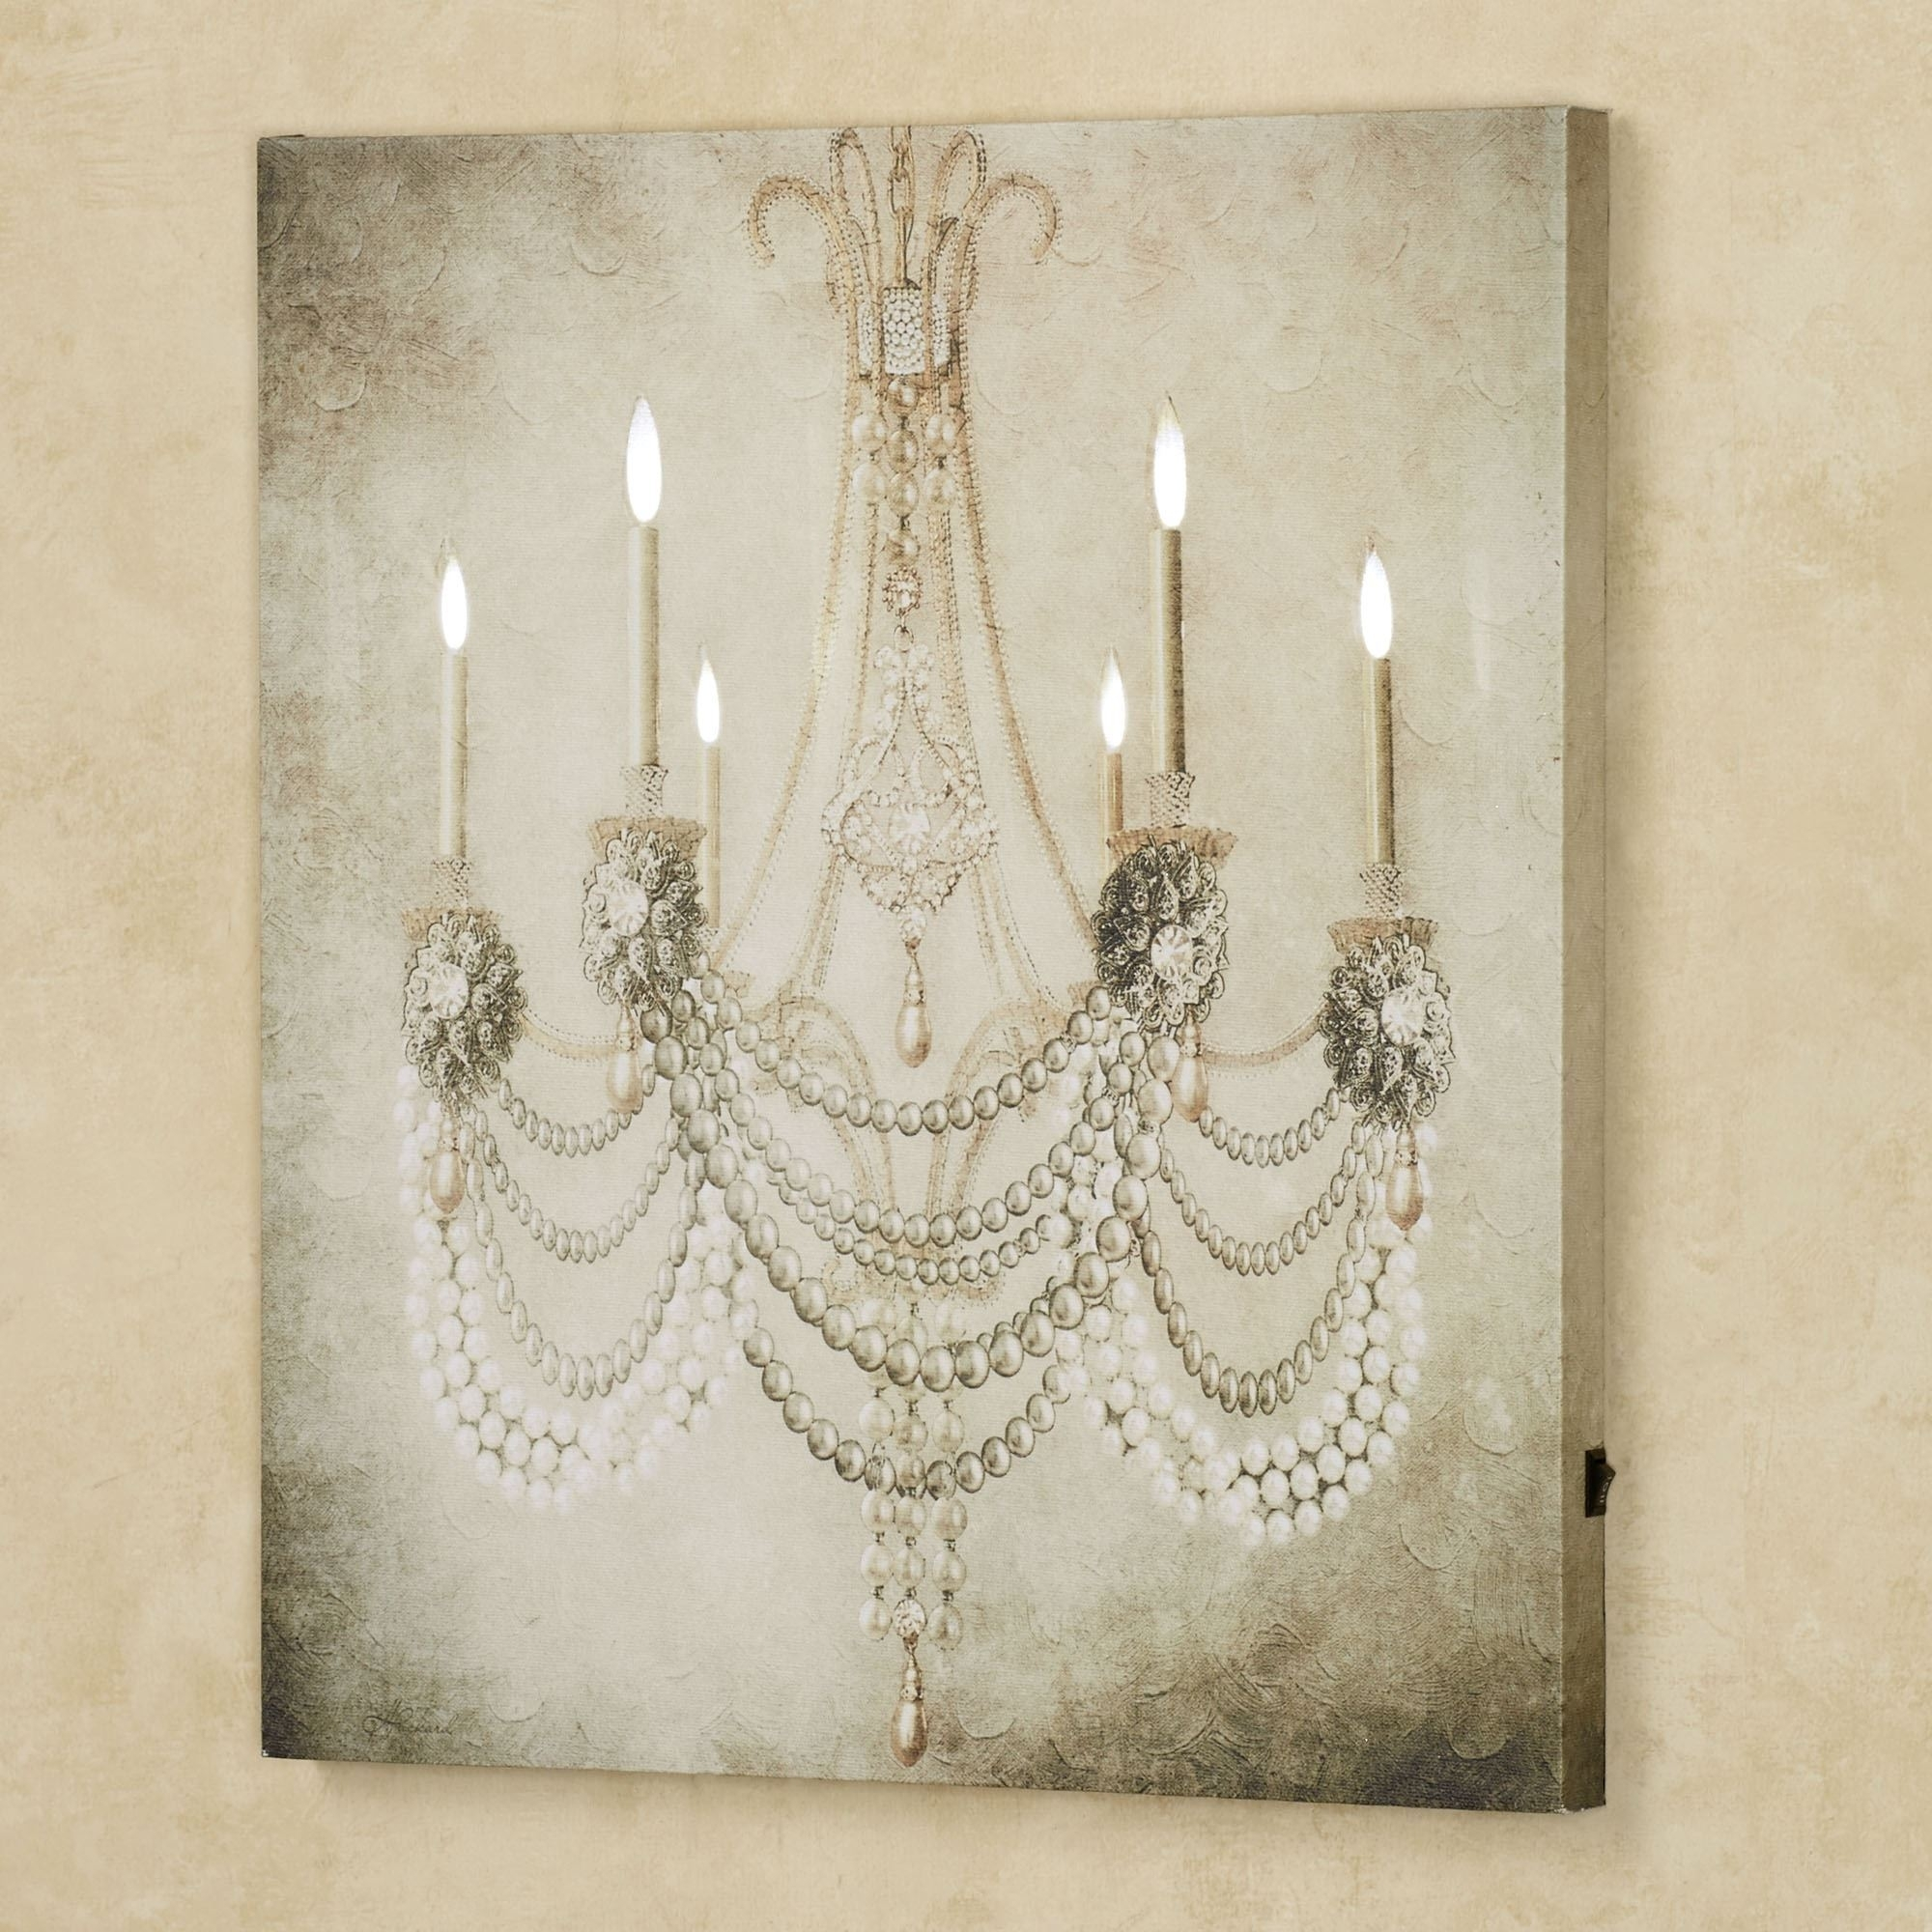 Vintage Chandelier Led Lighted Canvas Art With Regard To Recent Lighted Wall Art (View 5 of 20)